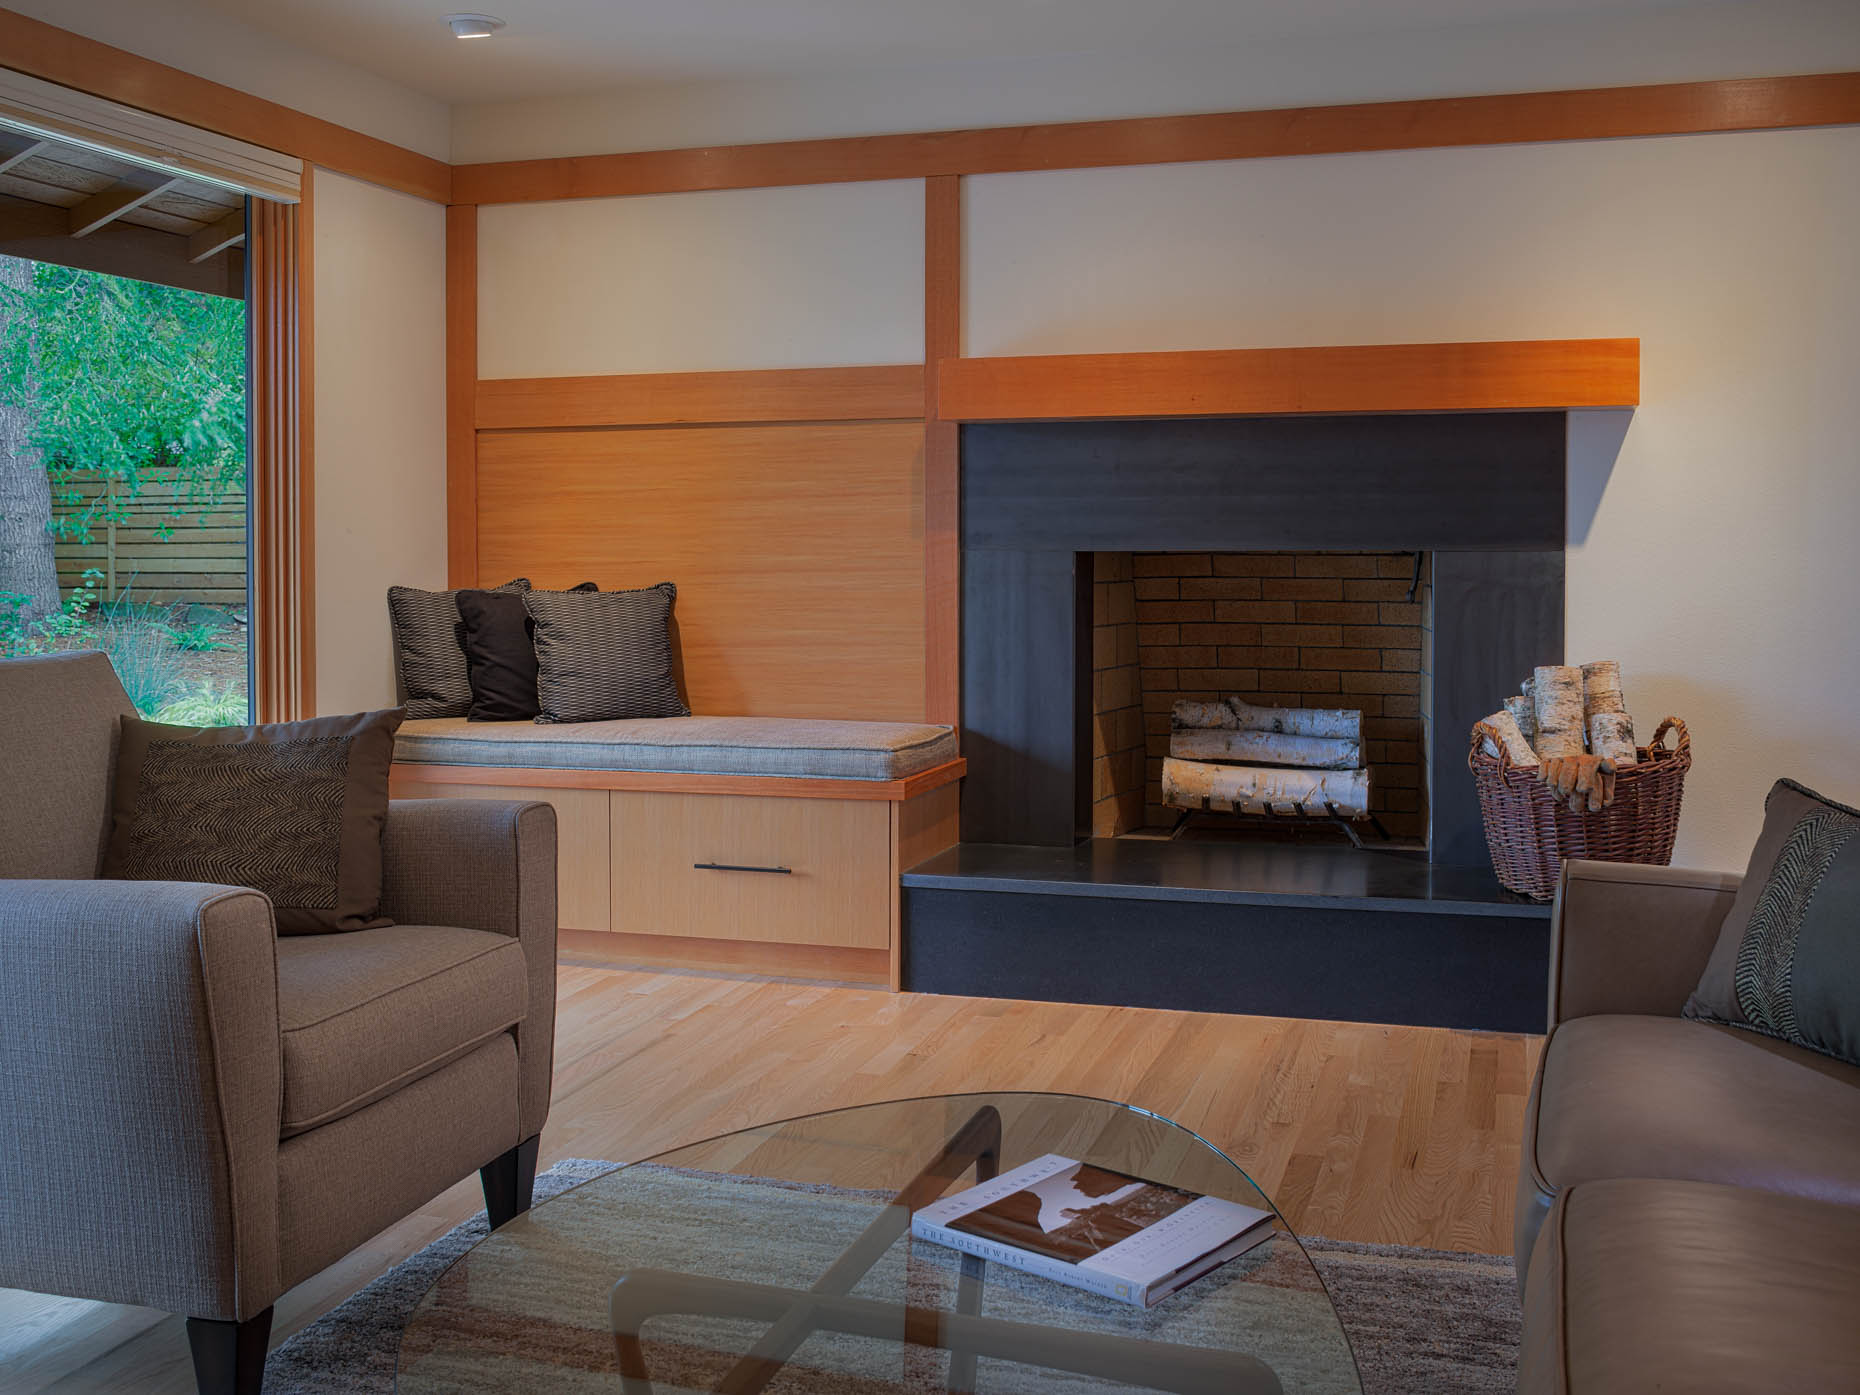 Aging in Place Remodel - Seattle Architects - CTA Design Build - Mid-Century, Transitional, Northwest, Remodel